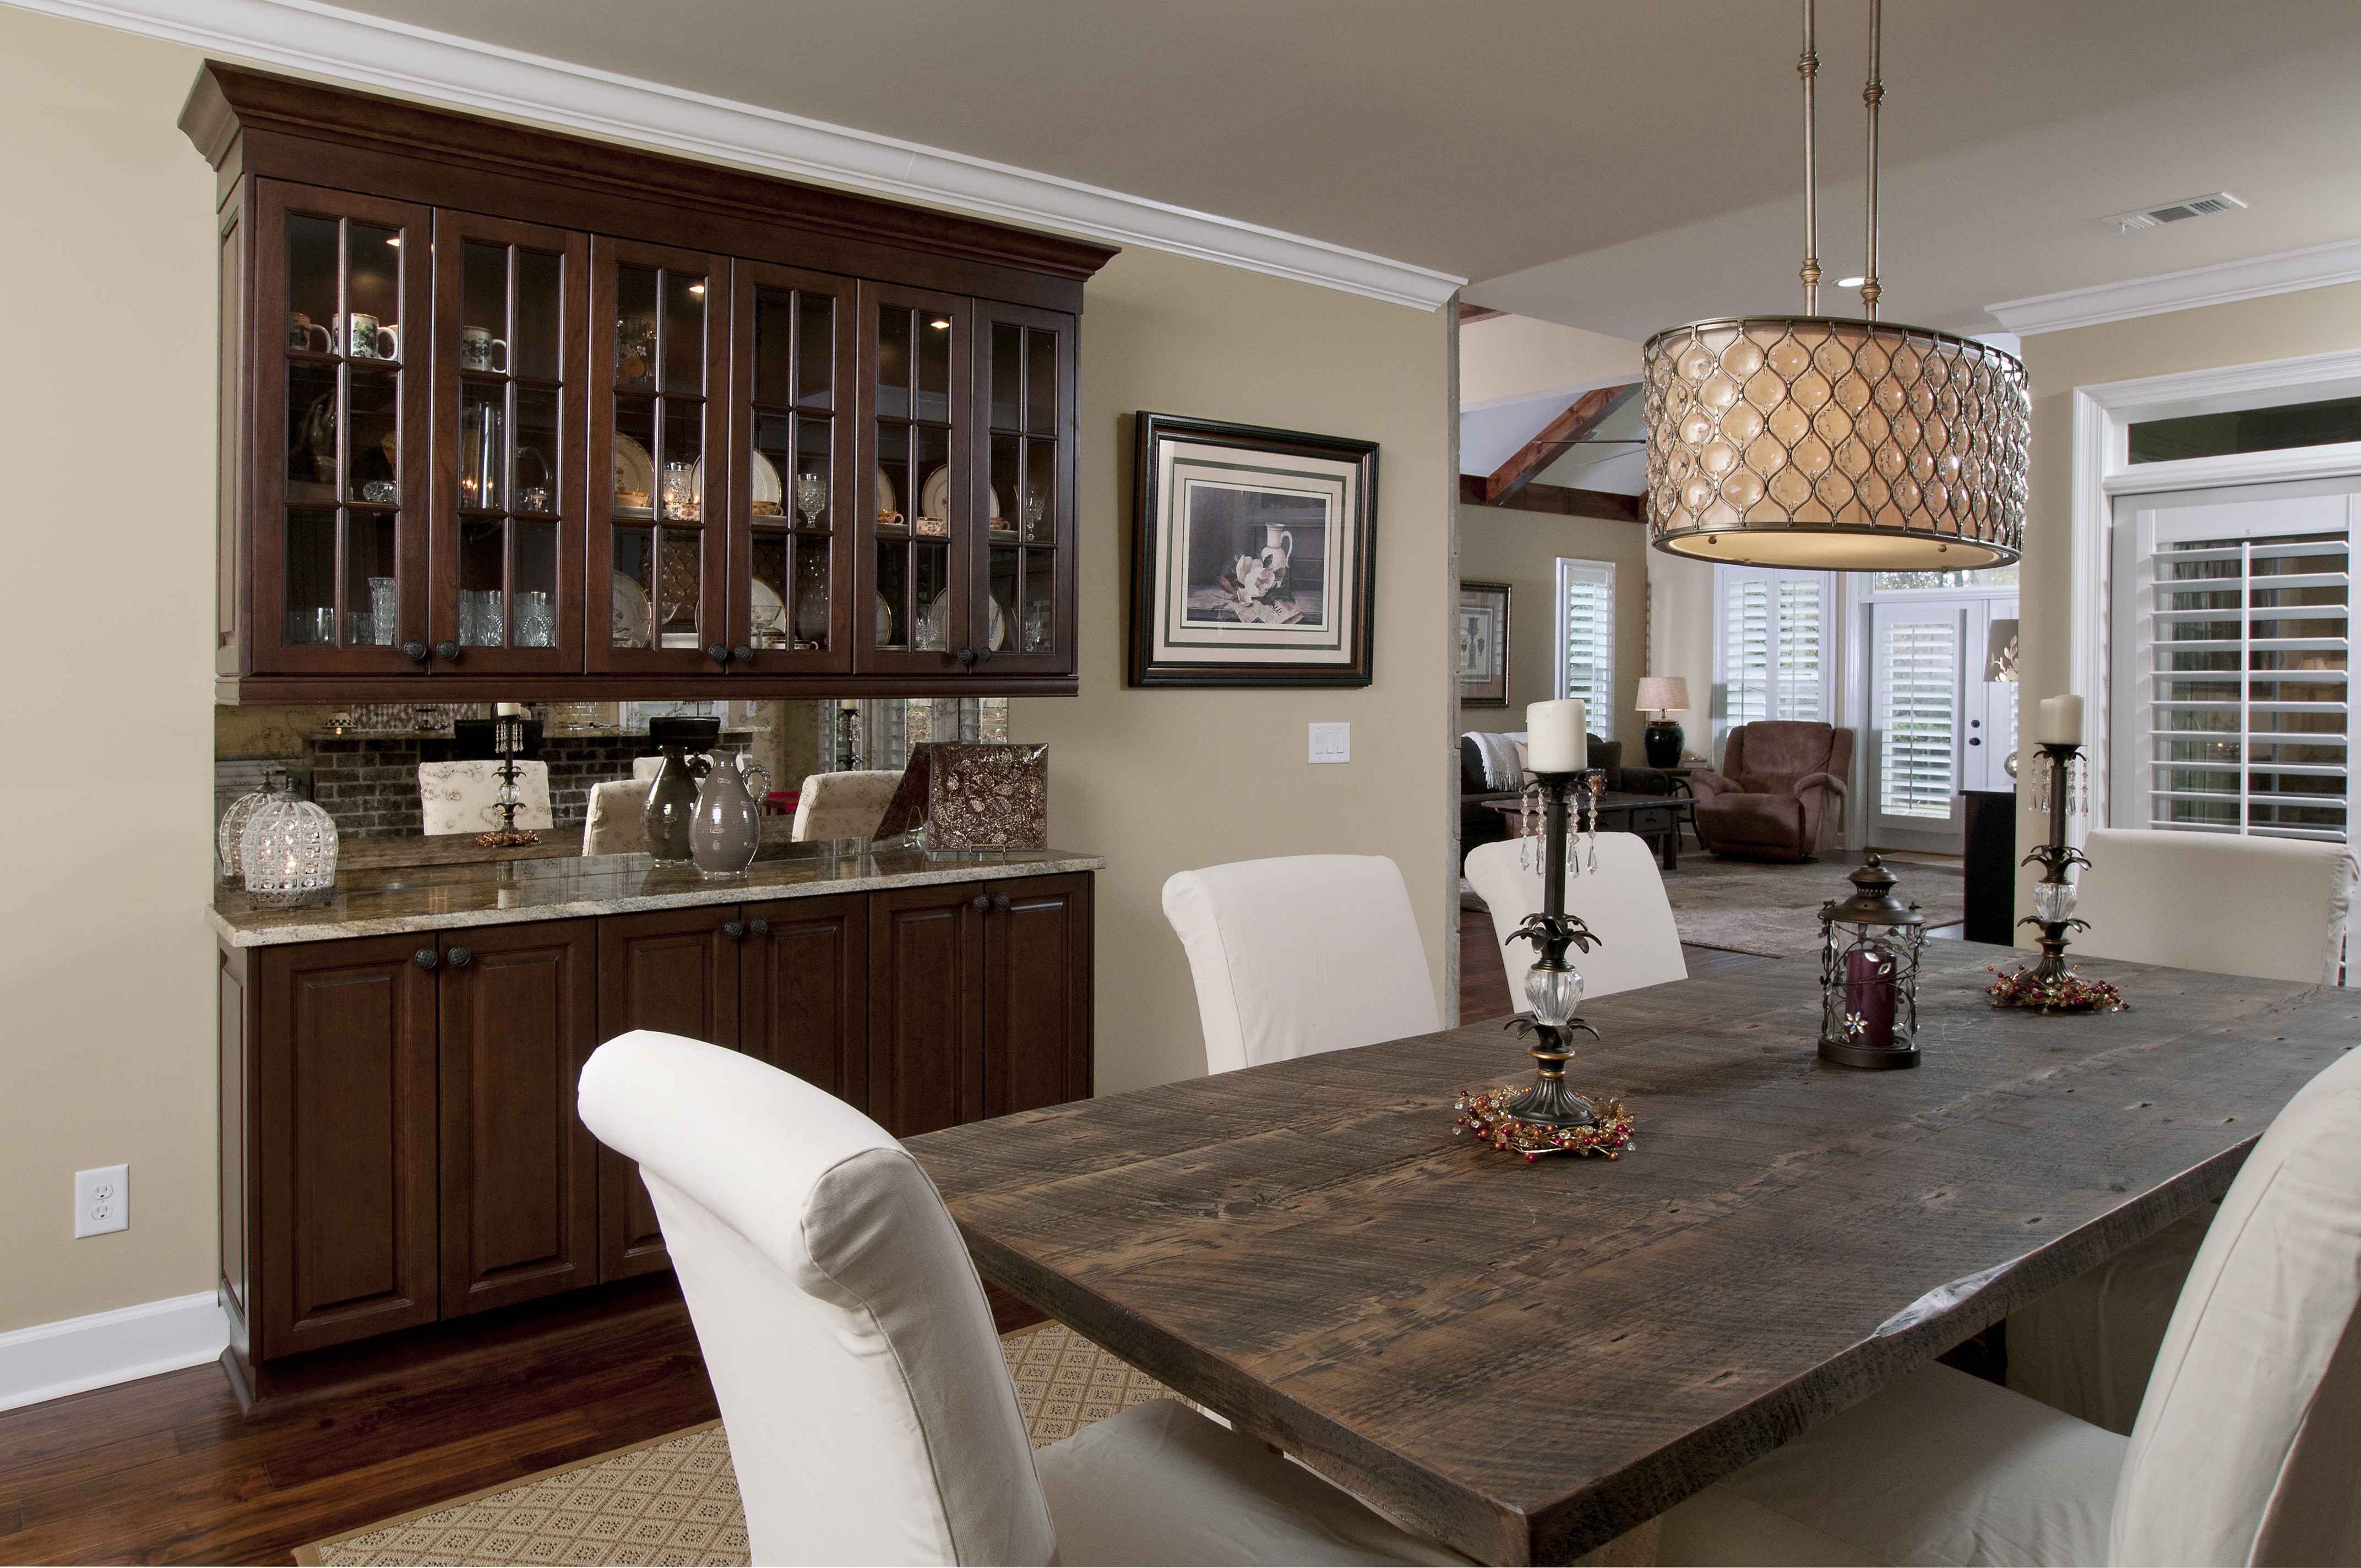 dining room glass cabinets - Living Room Cabinets Ideas